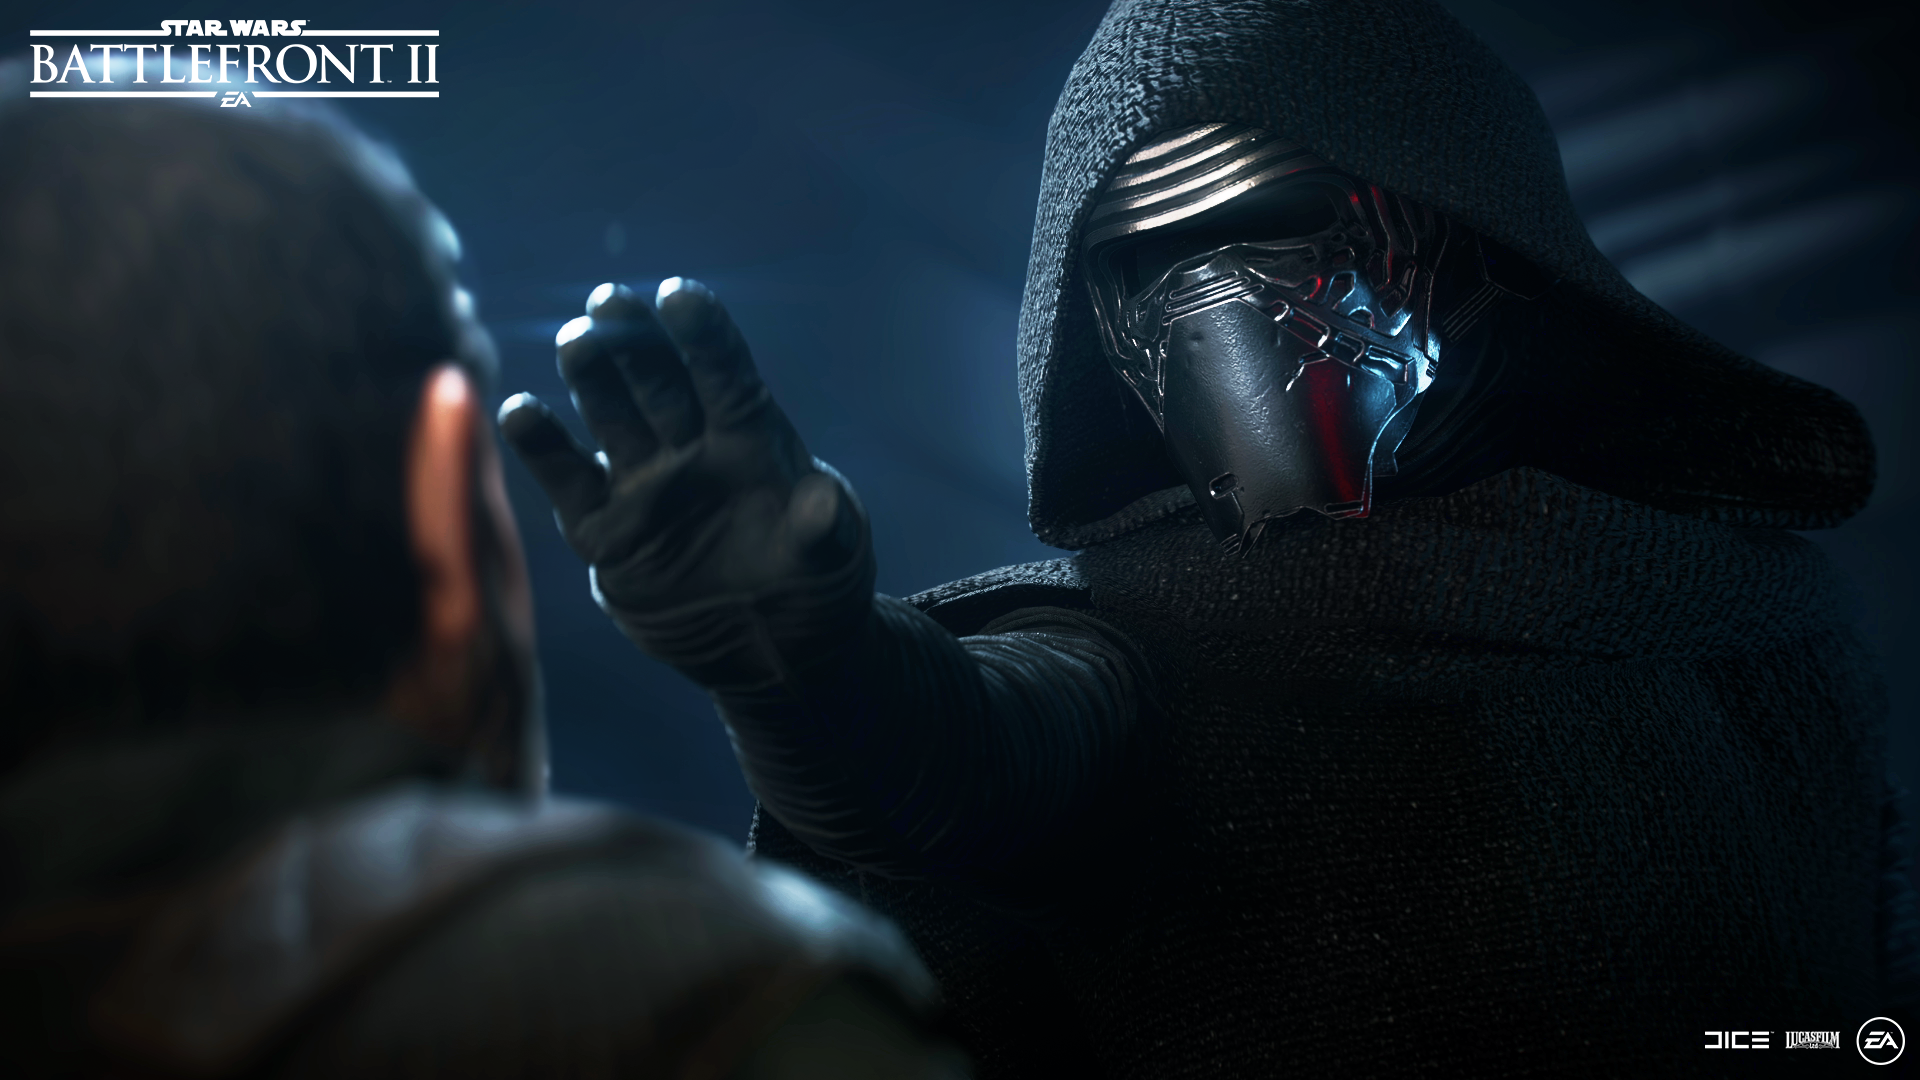 'Star Wars Battlefront 2' is offline for maintenance right now